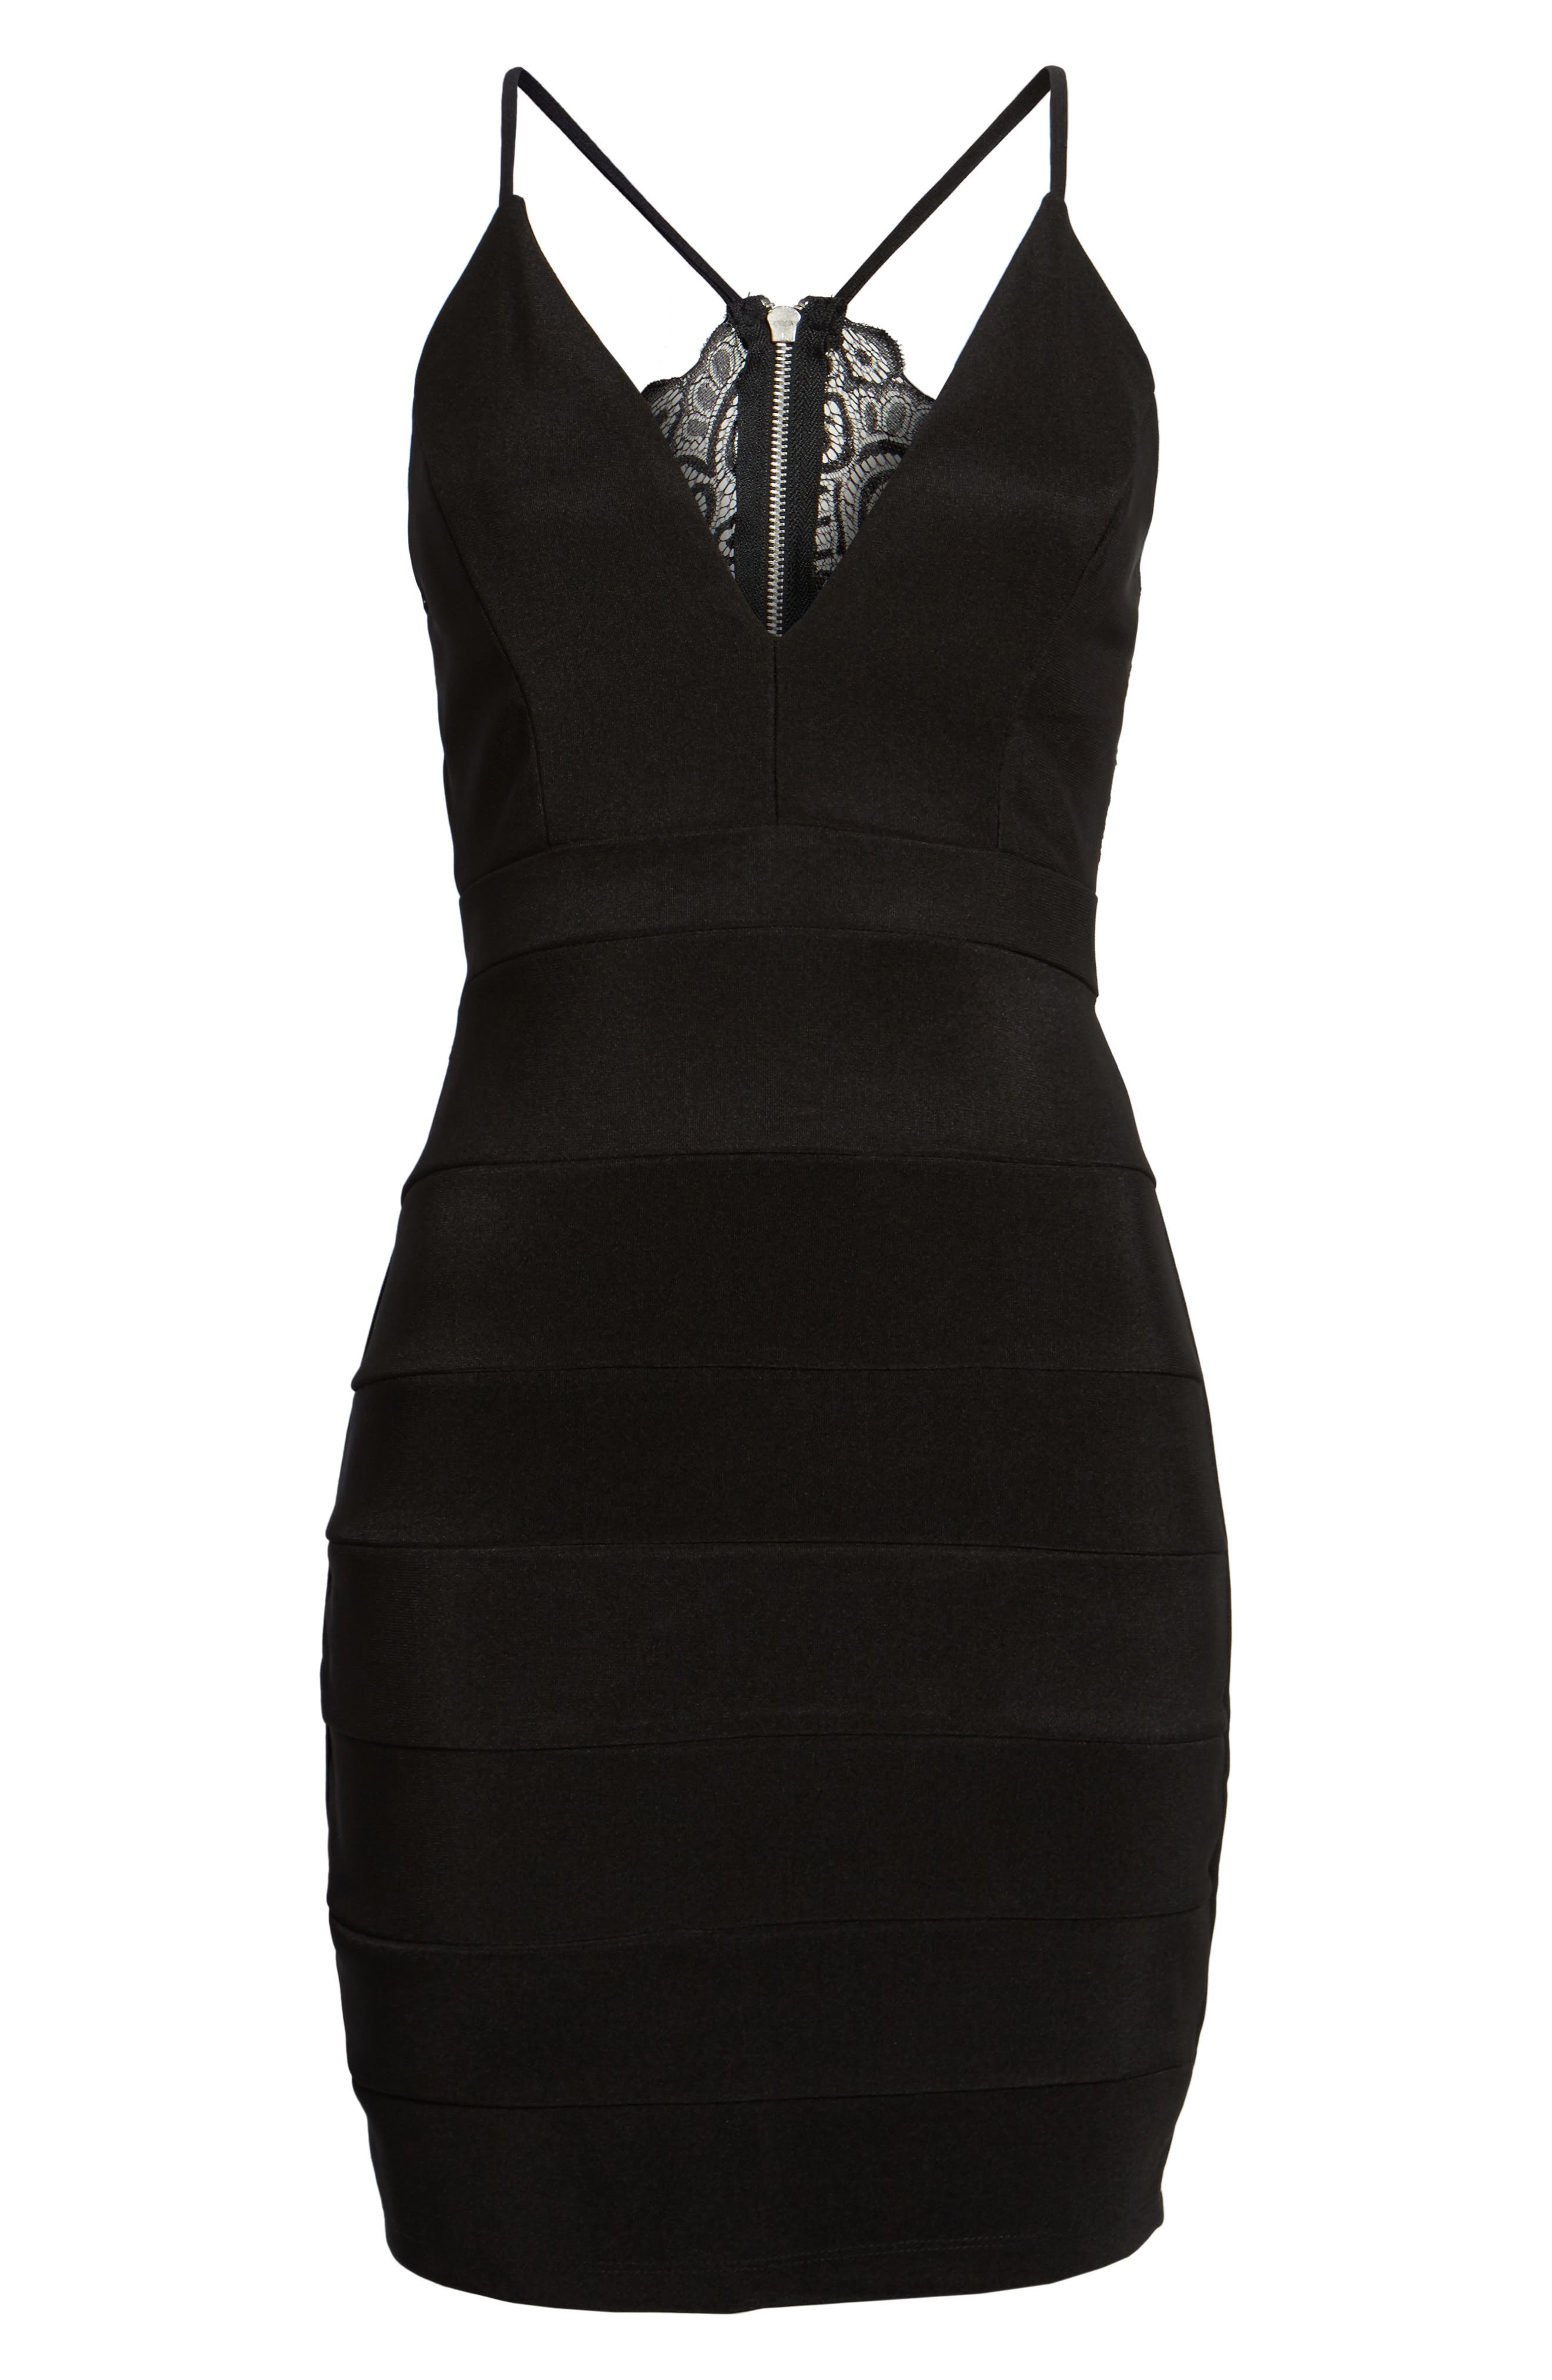 LOVE, NICKIE LEW, Lace Back Body-Con Dress, Alternate thumbnail 6, color, 001